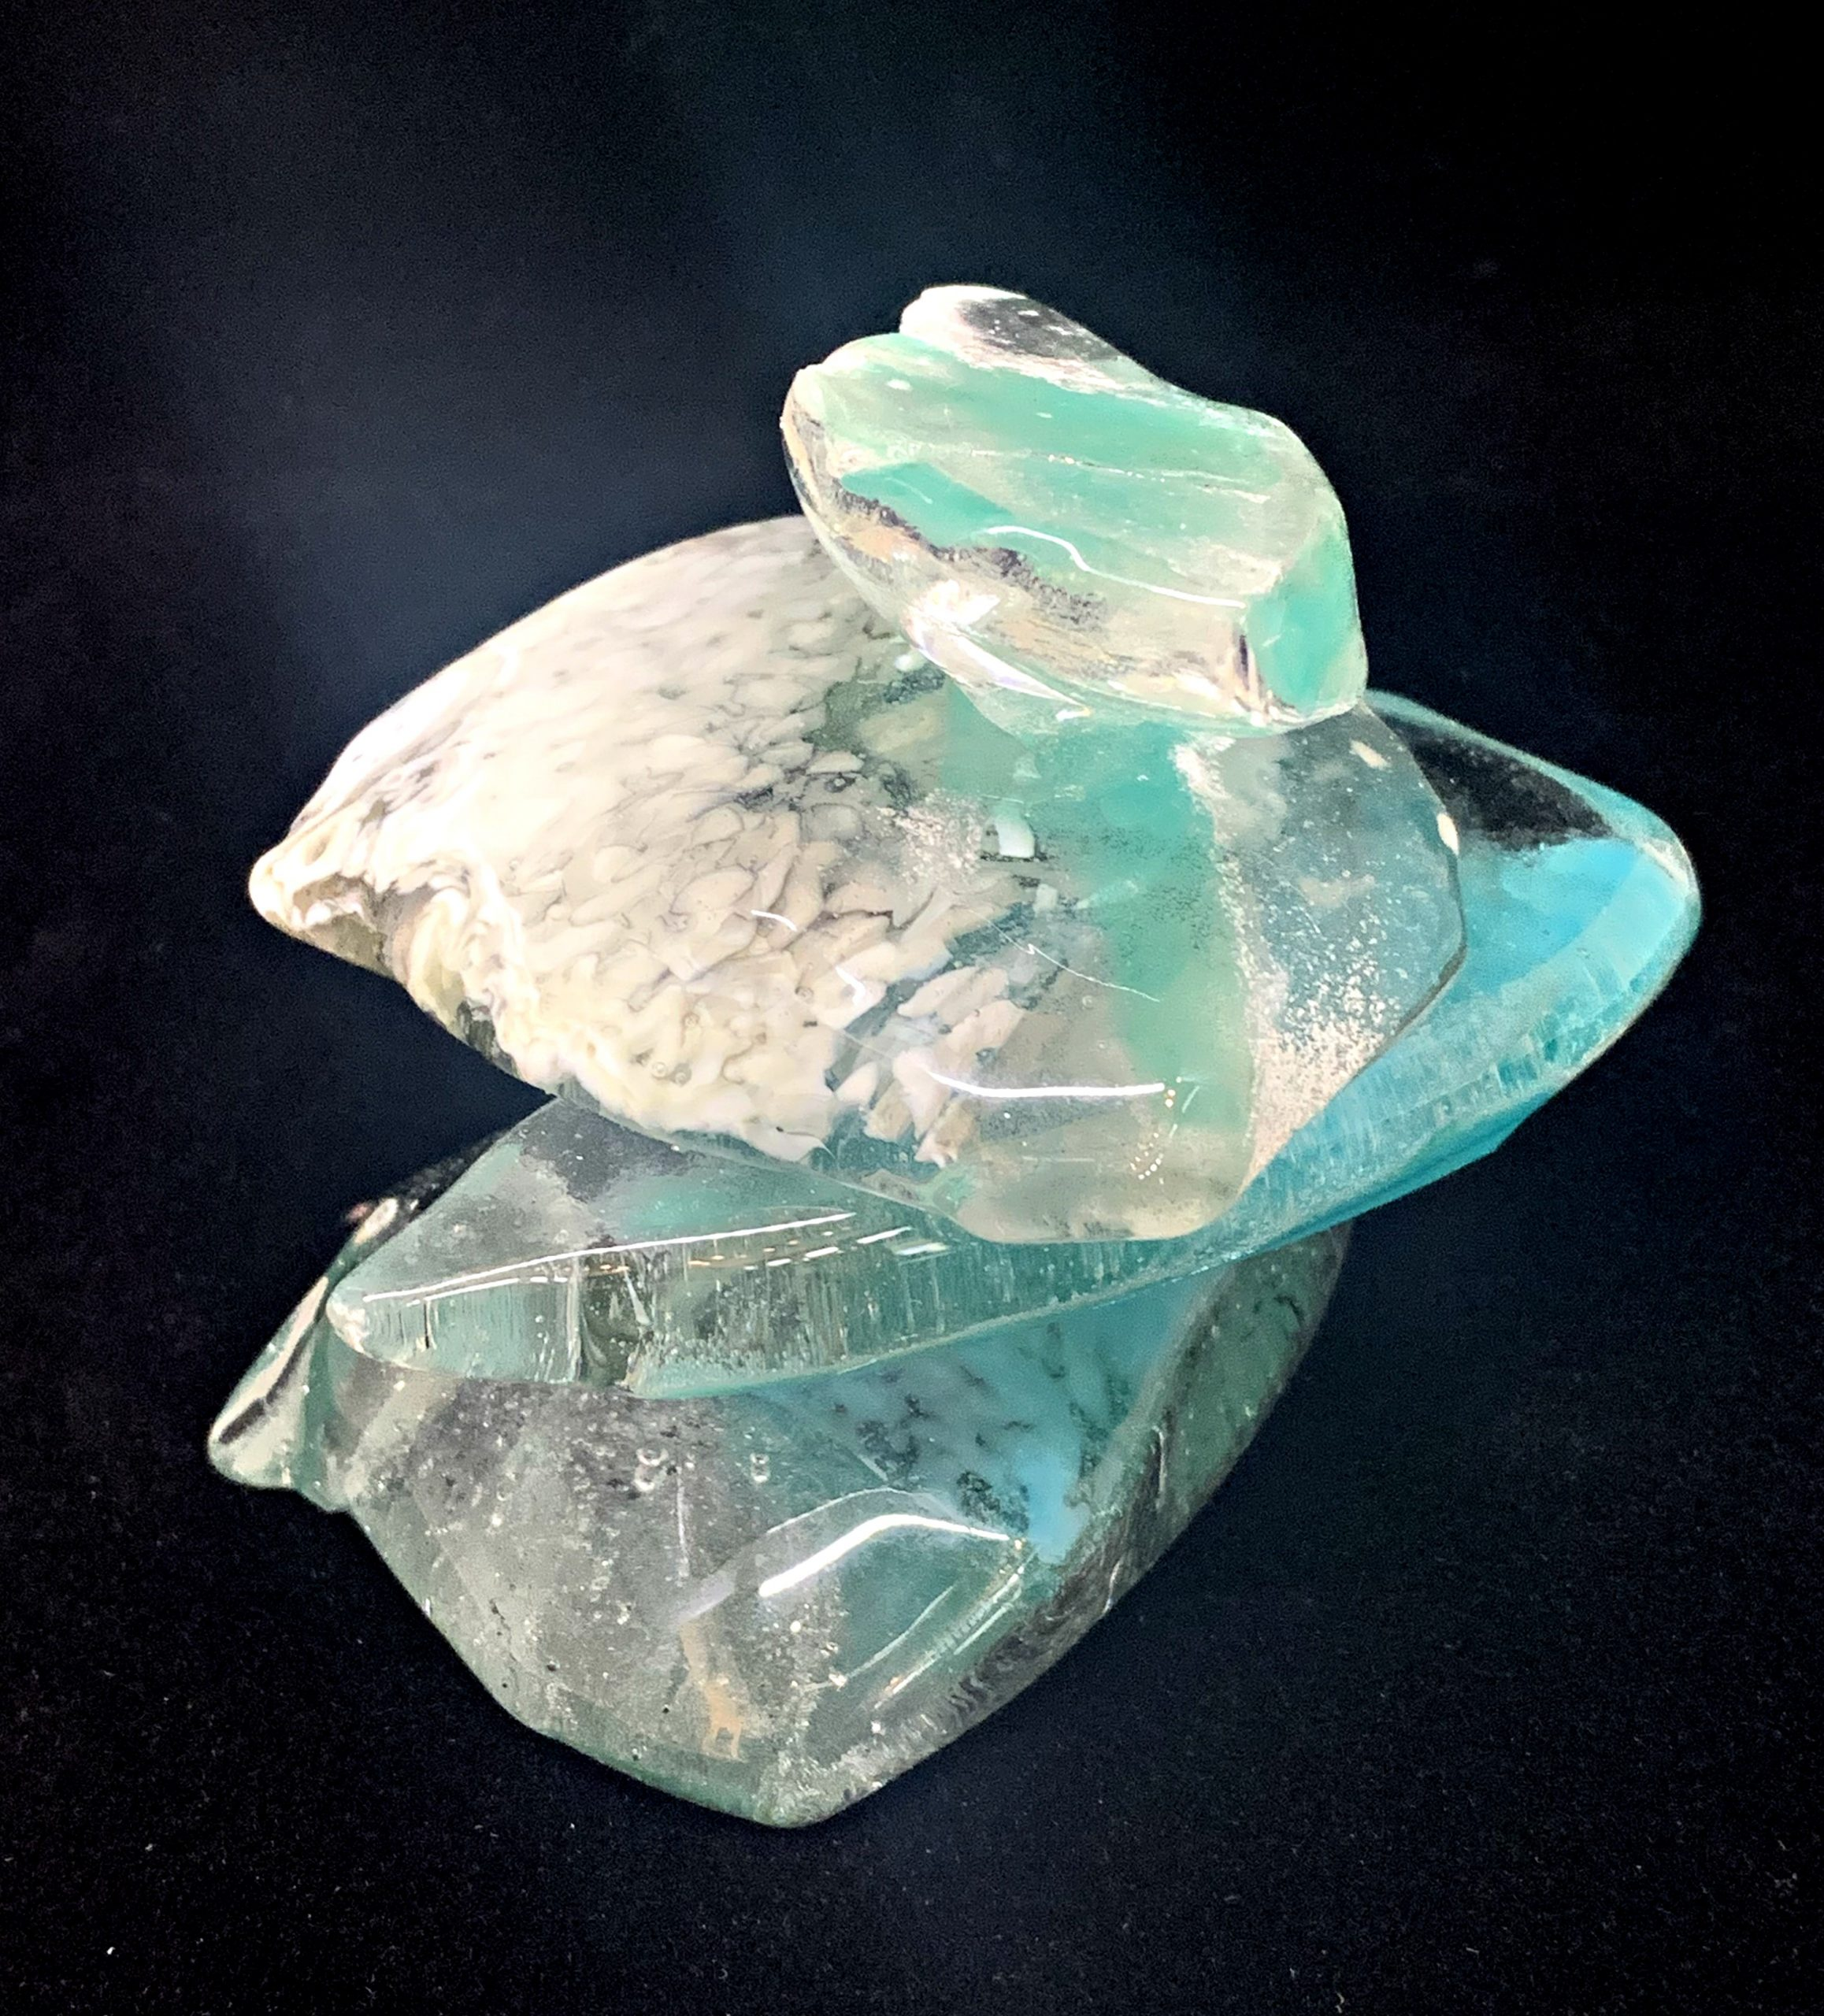 Cast Glass Rocky Mountain Cairn 15 sculpture by Heather Cuell | Effusion Art Gallery + Cast Glass Studio, Invermere BC